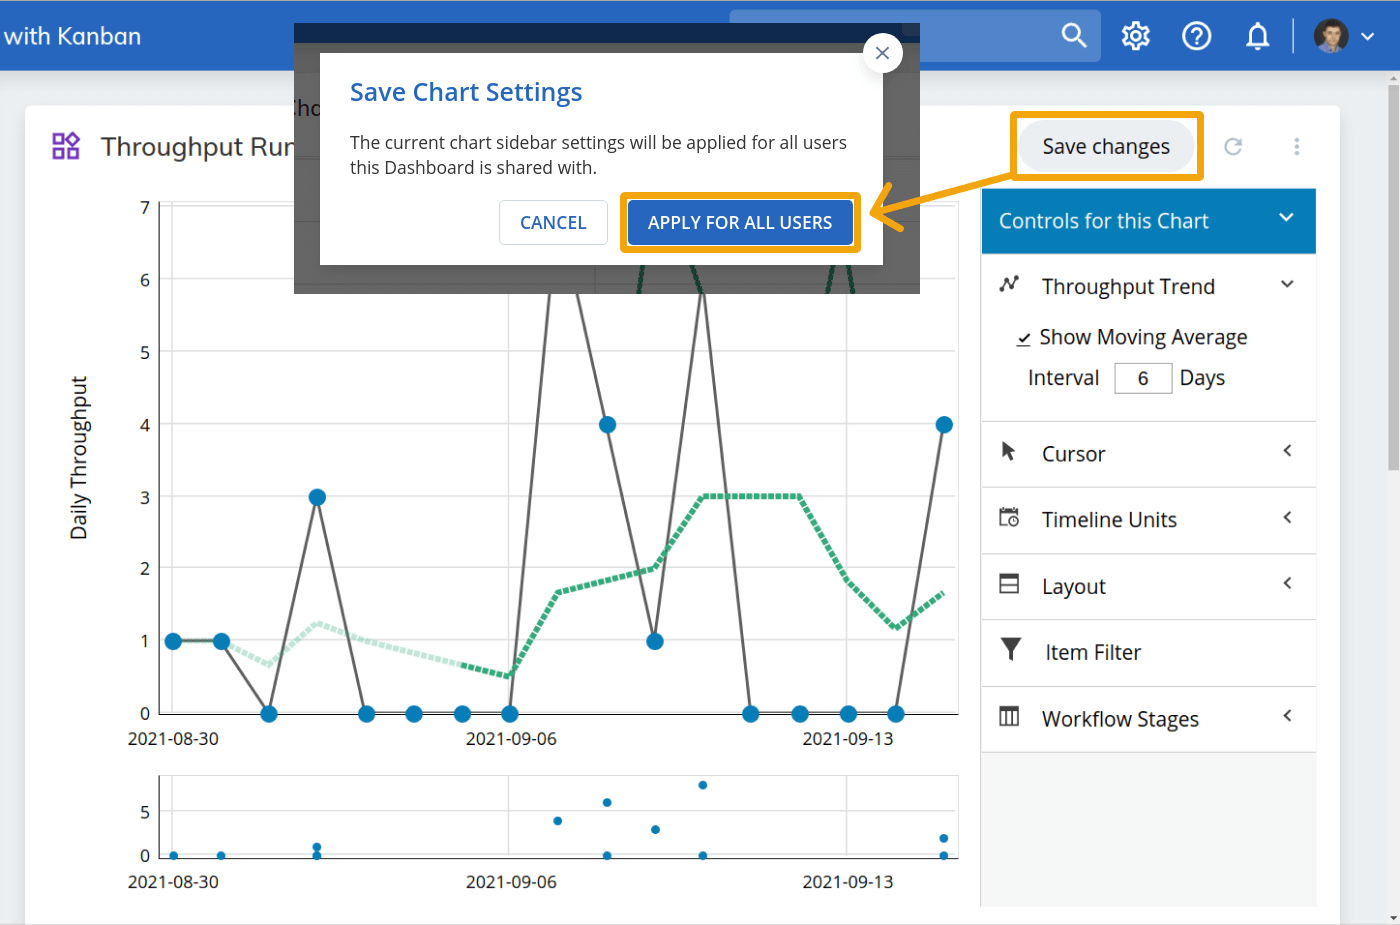 save-chart-settings-in-dashboards.png